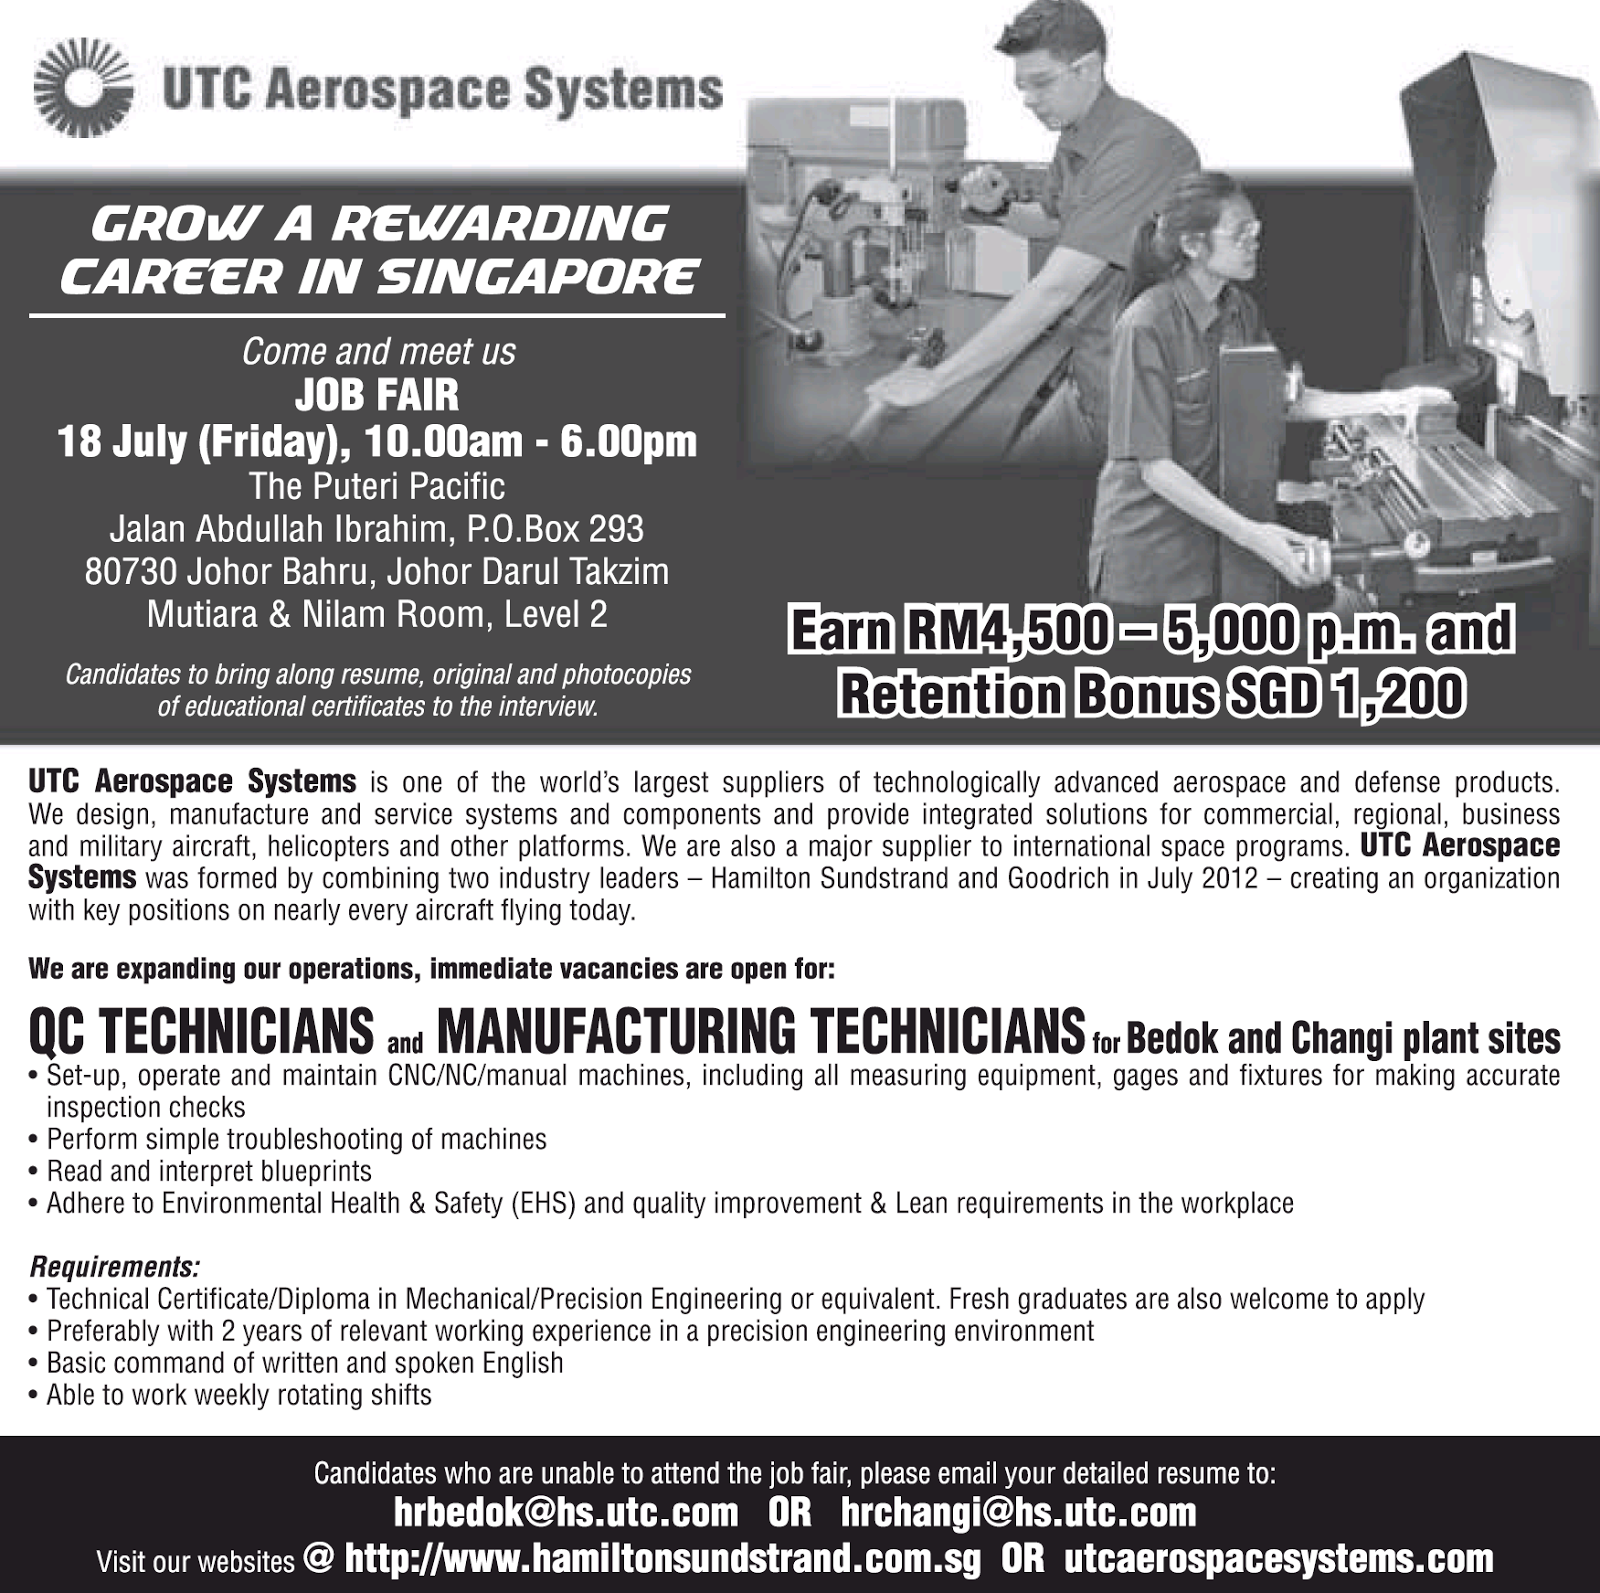 Oil & Gas, Government, and Private Sectors Jobs: UTC